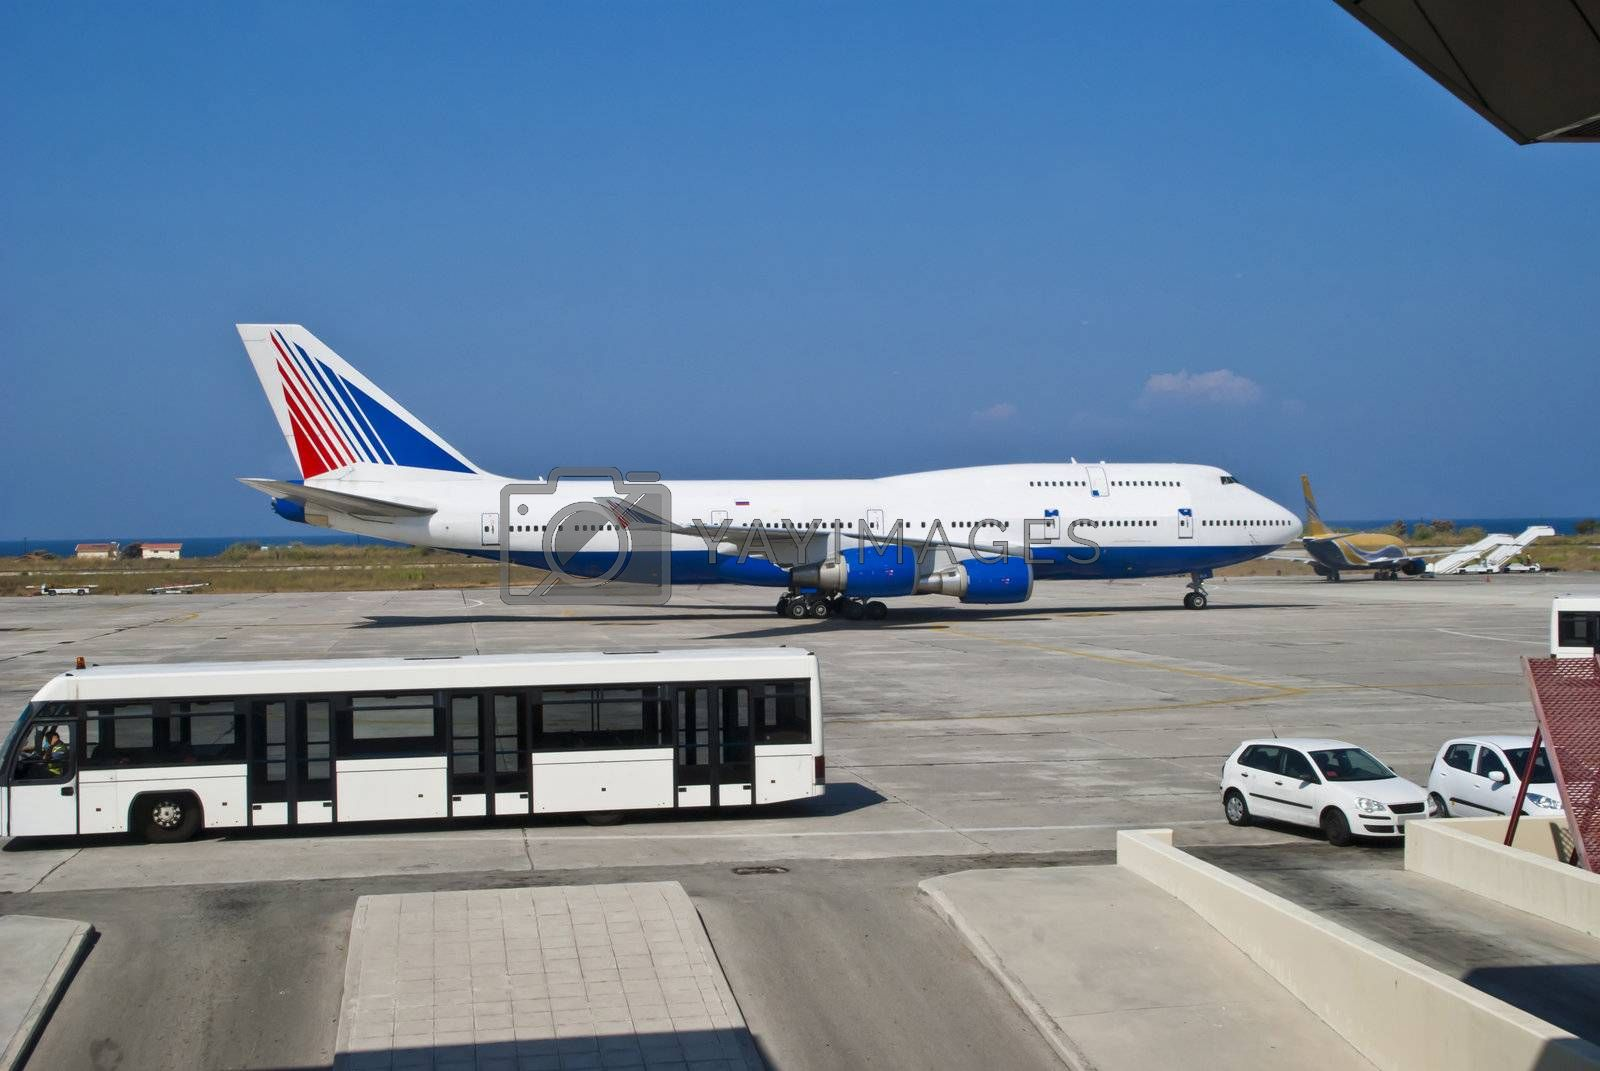 Boeing 747, also known by the nickname Jumbojet, is the world's second largest passenger aircraft after Airbus A380. Picture are shot from the departure hall at Rhodes airport.